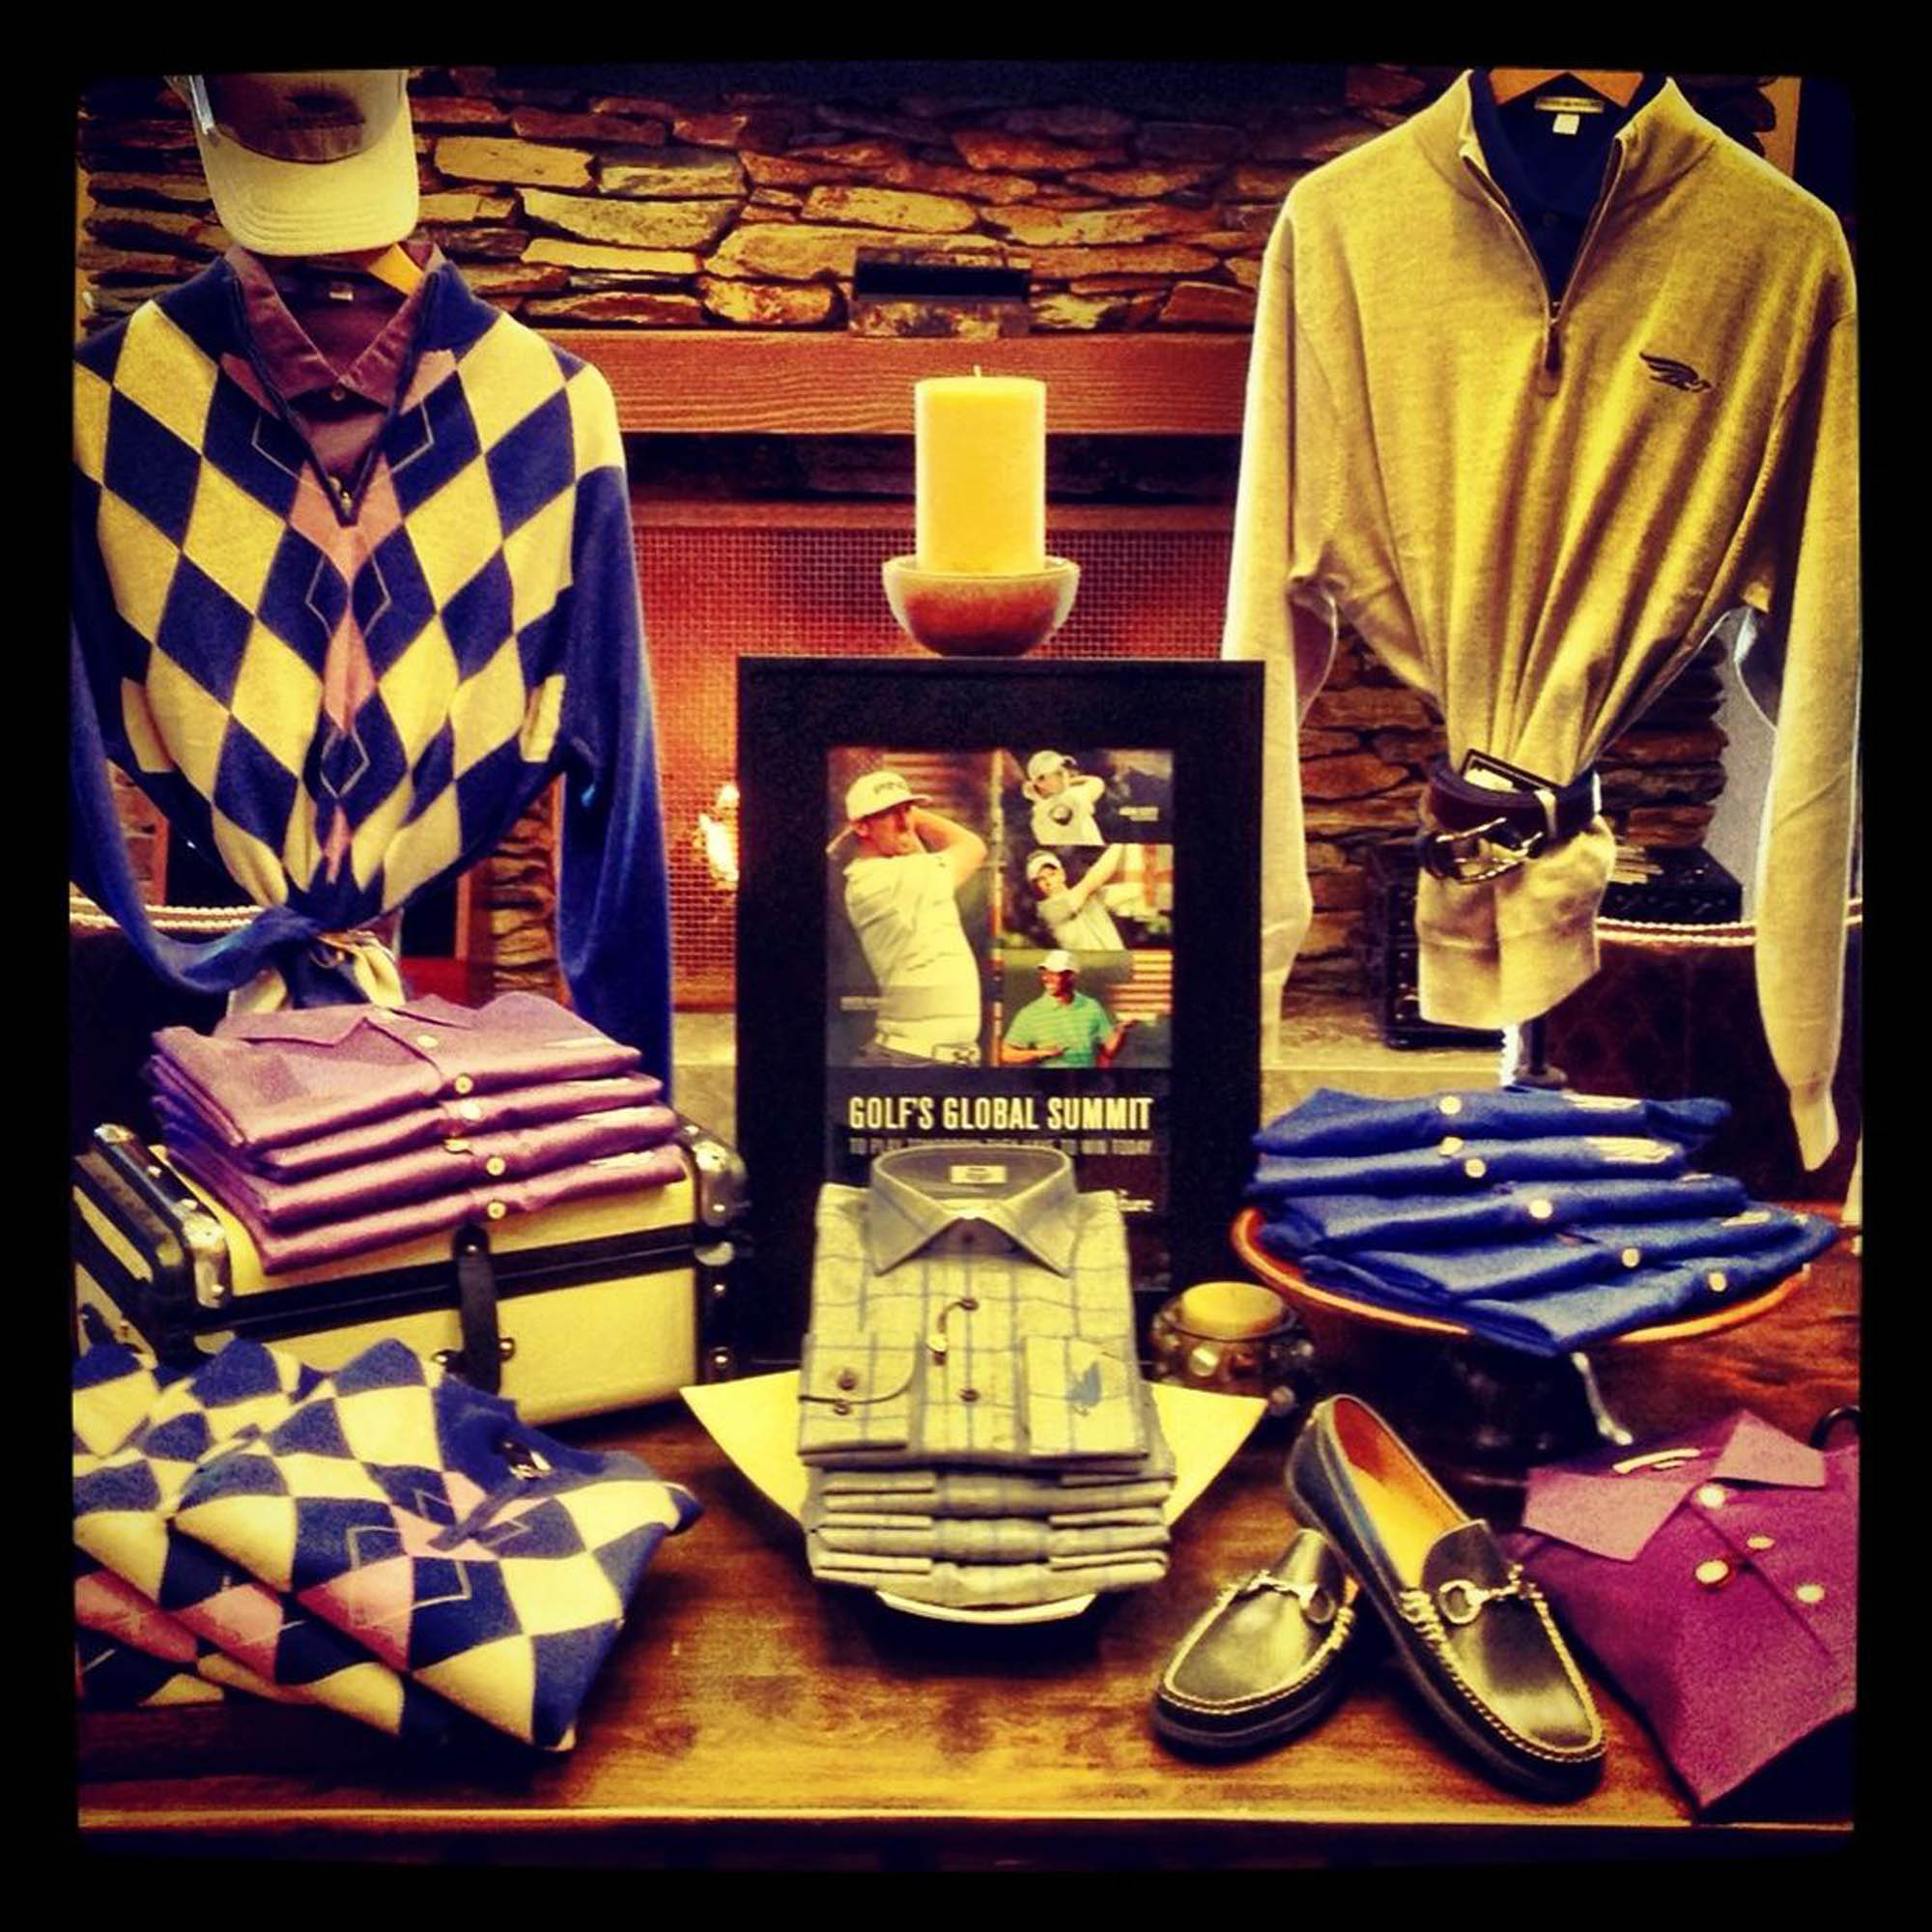 Men's golf apparel is on display in the Golf Shop